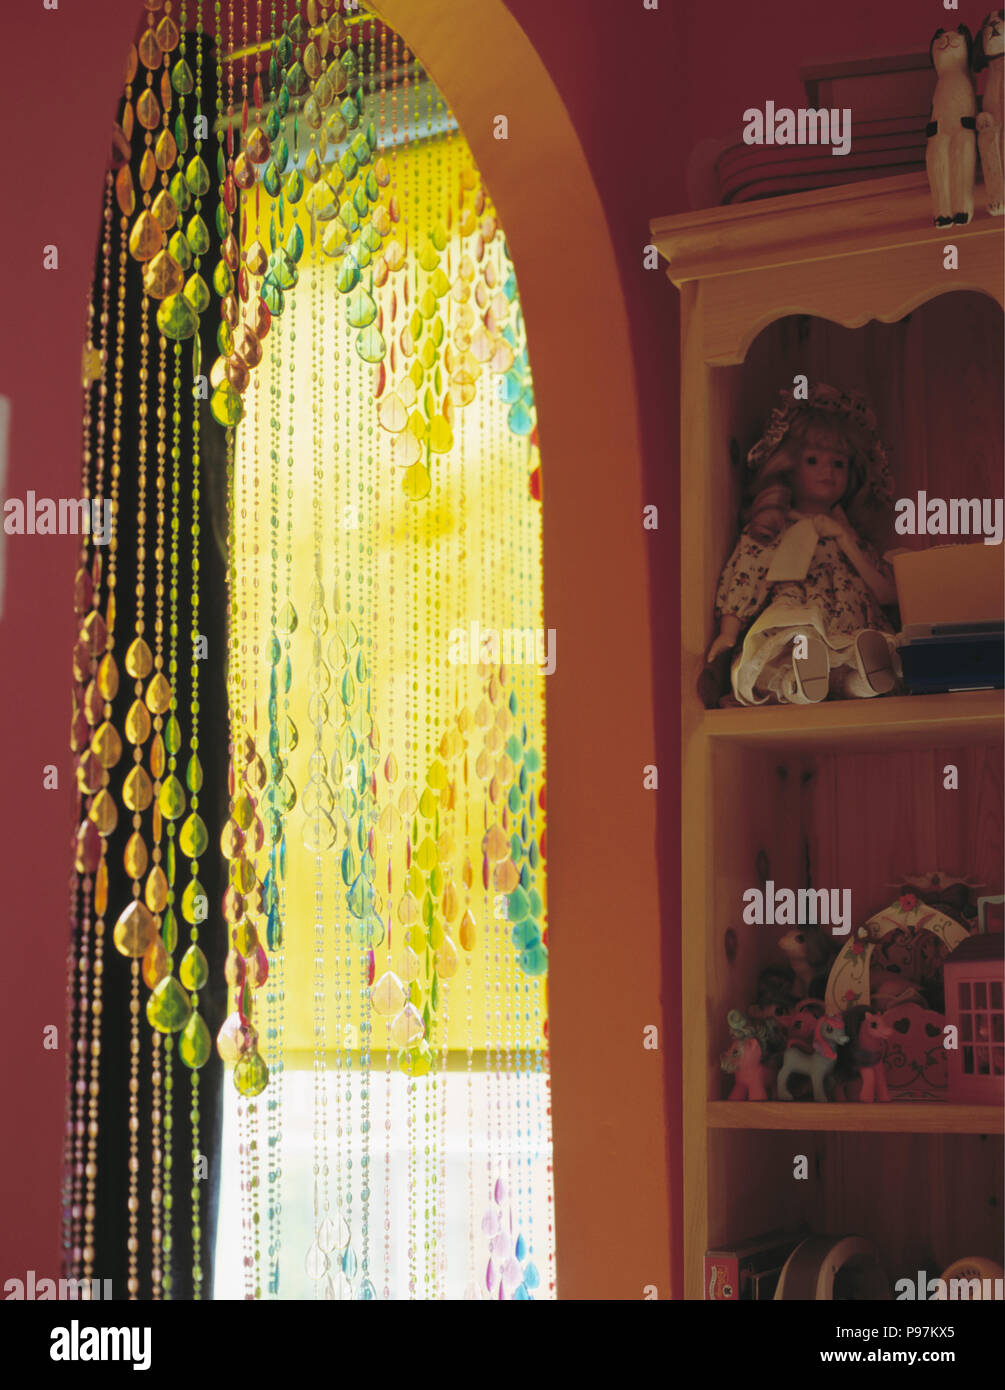 Beaded Curtains Stock Photos & Beaded Curtains Stock Images ...